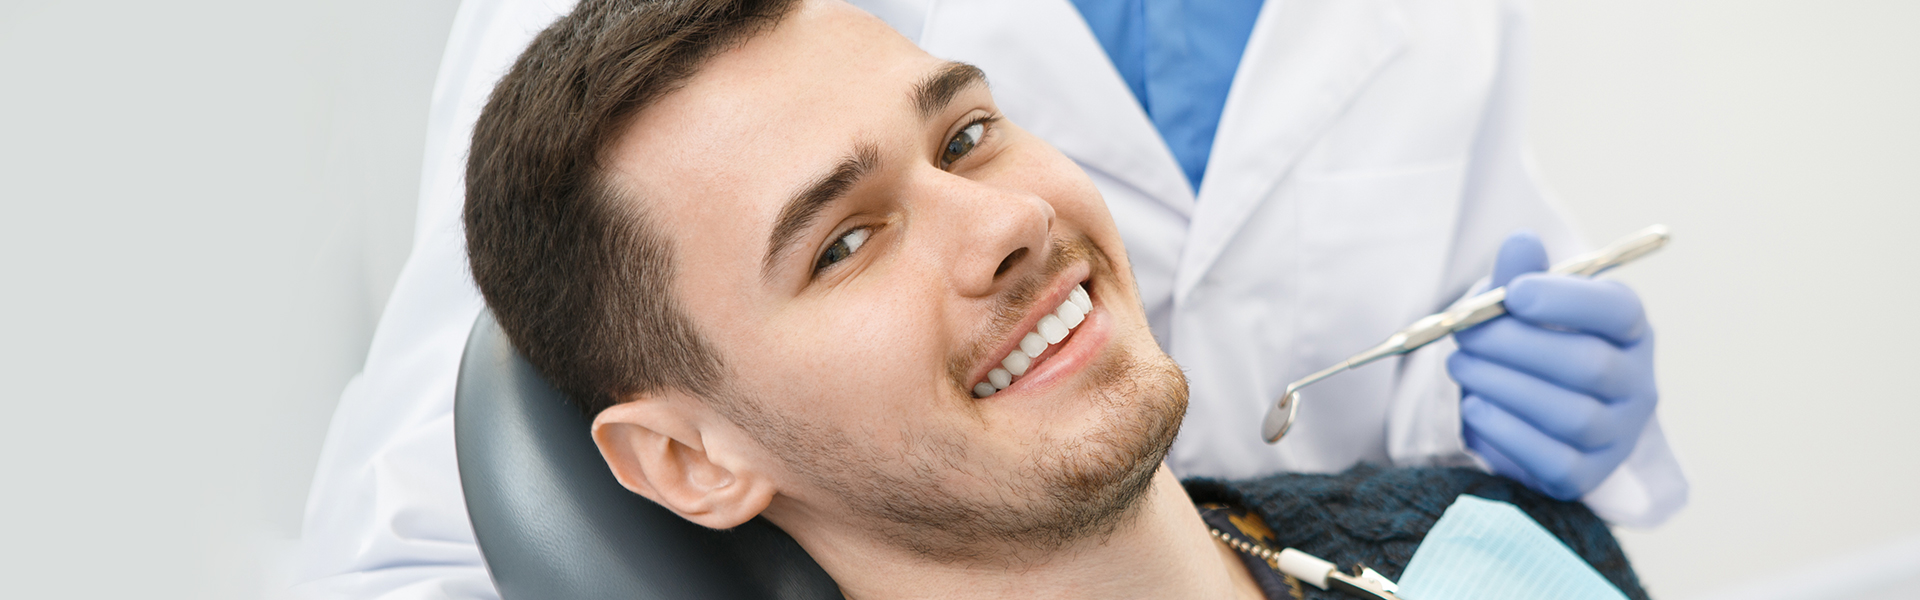 Root Canal Treatment: Procedure and Benefits